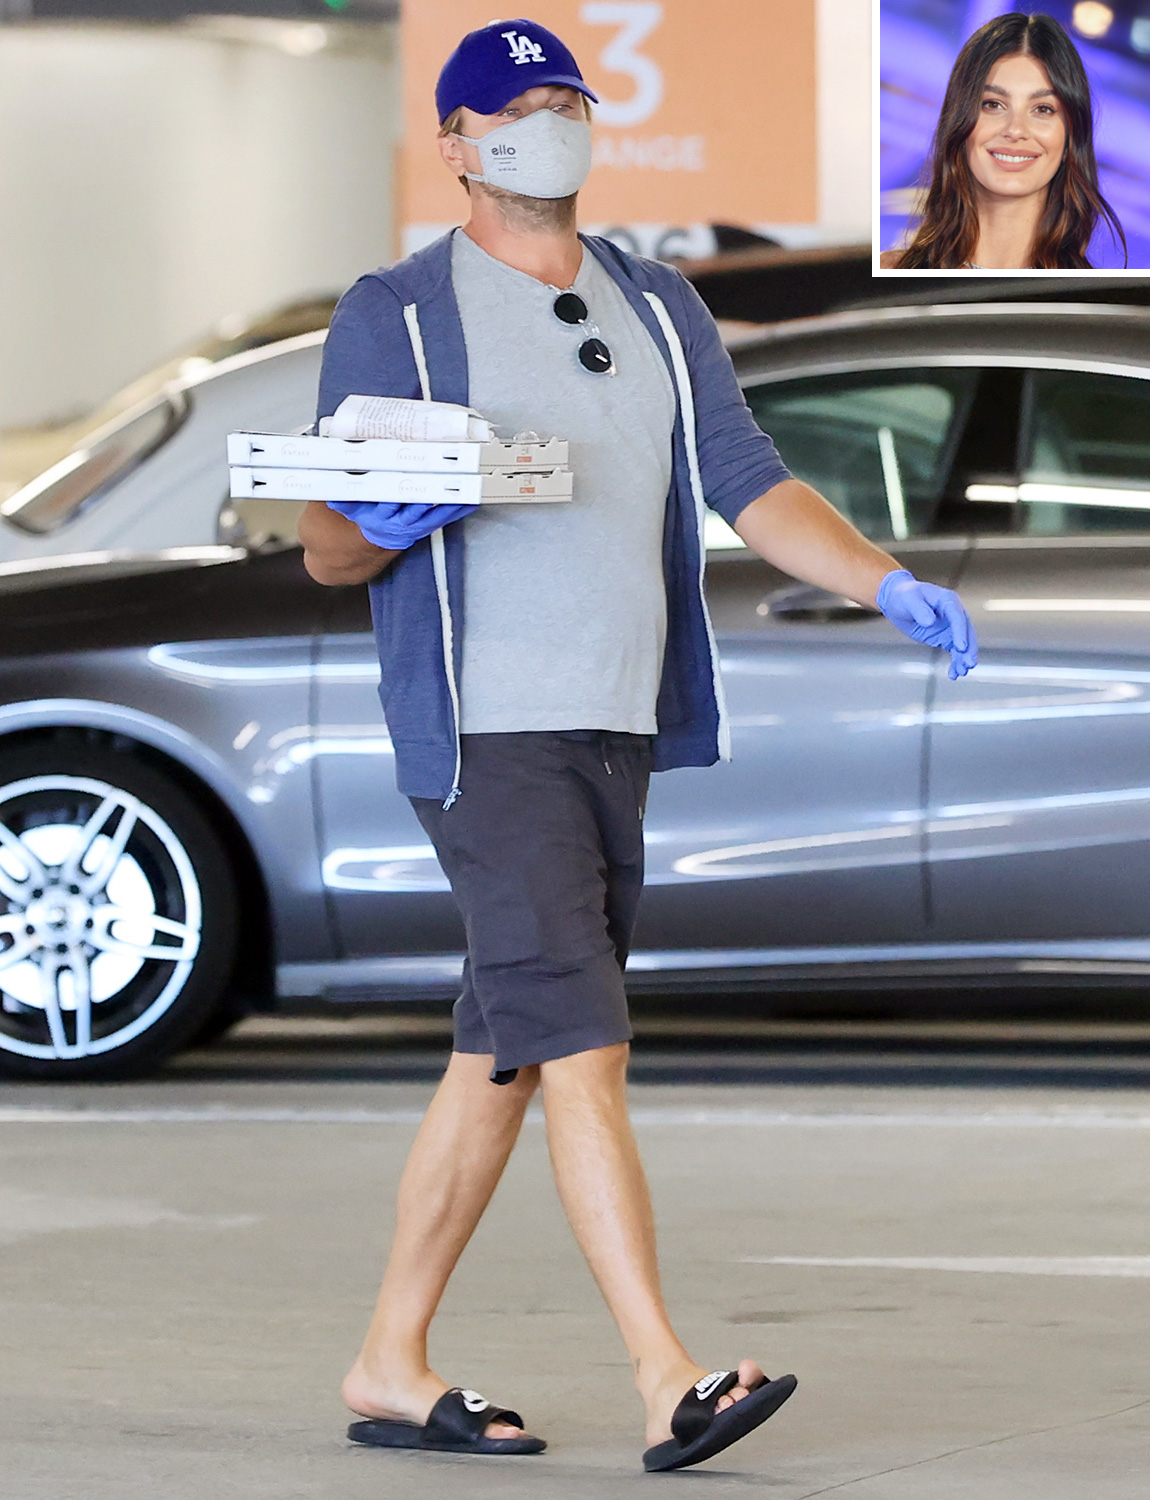 Leonardo DiCaprio looks very much domesticated as he is seen grocery shopping with his girlfriend Camilla Morrone at Eataly